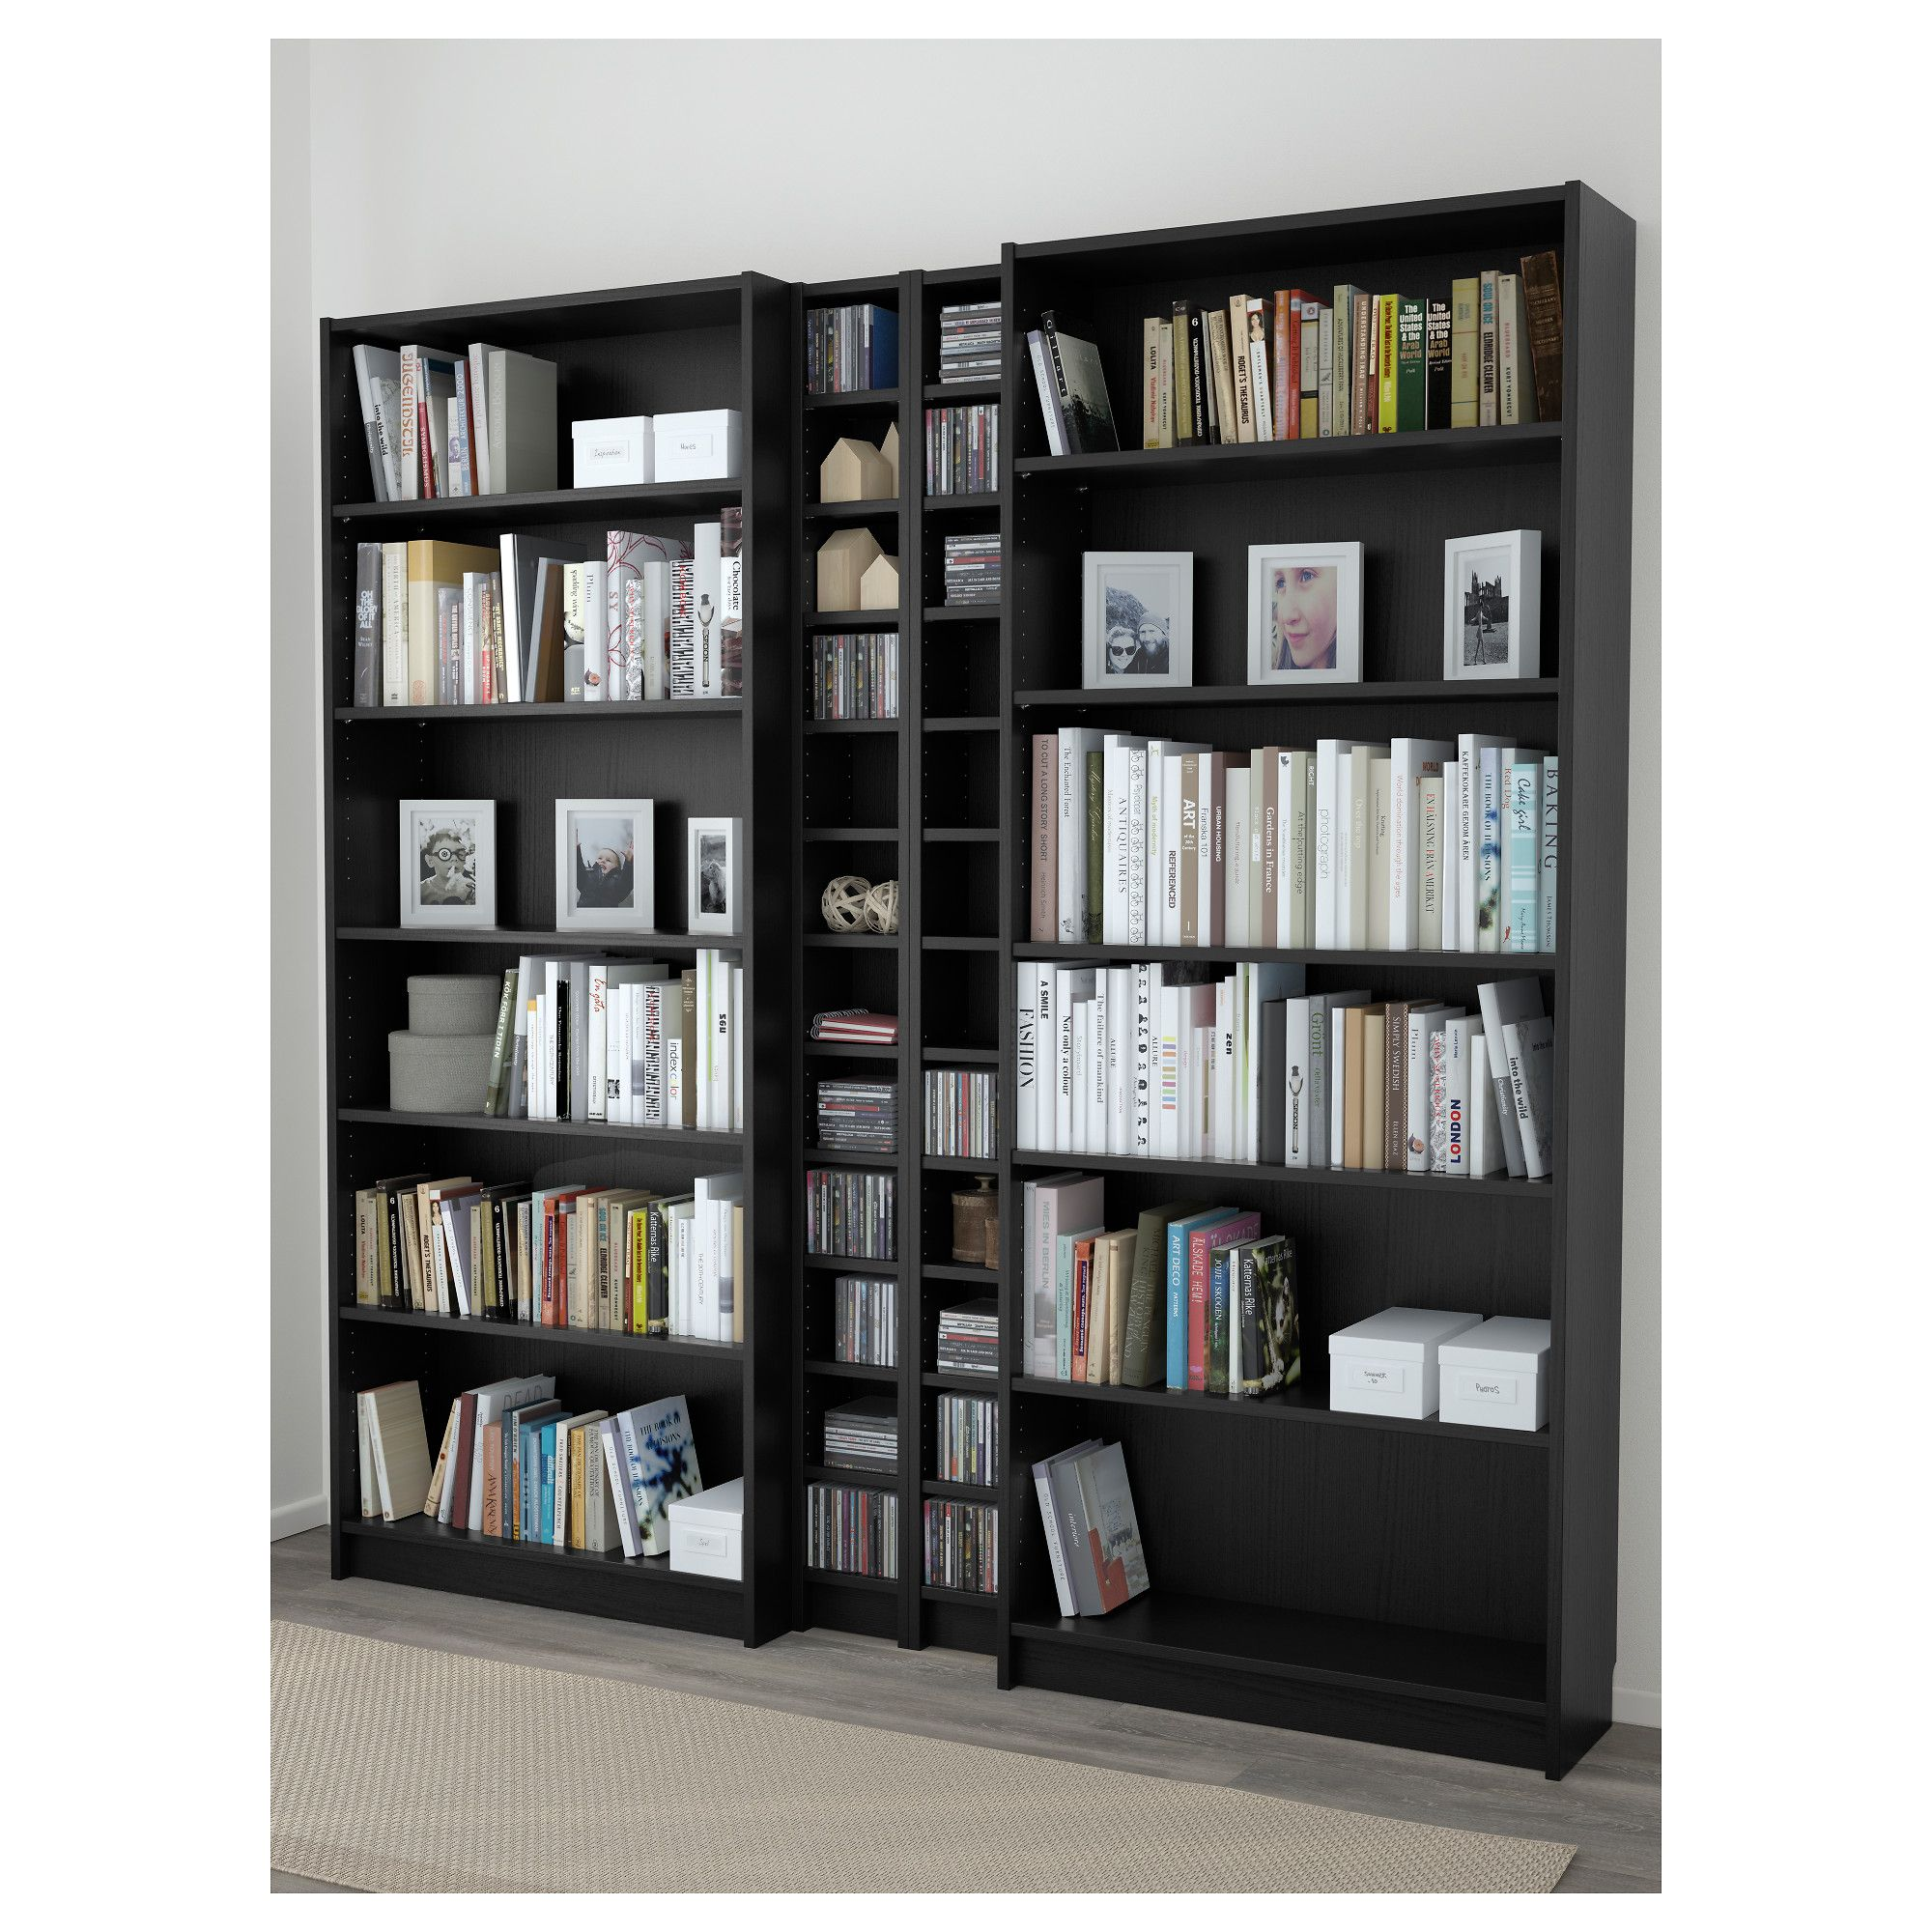 Gnedby Regal Ikea Billy Gnedby Bookcase Black Brown Cairo Bookcase